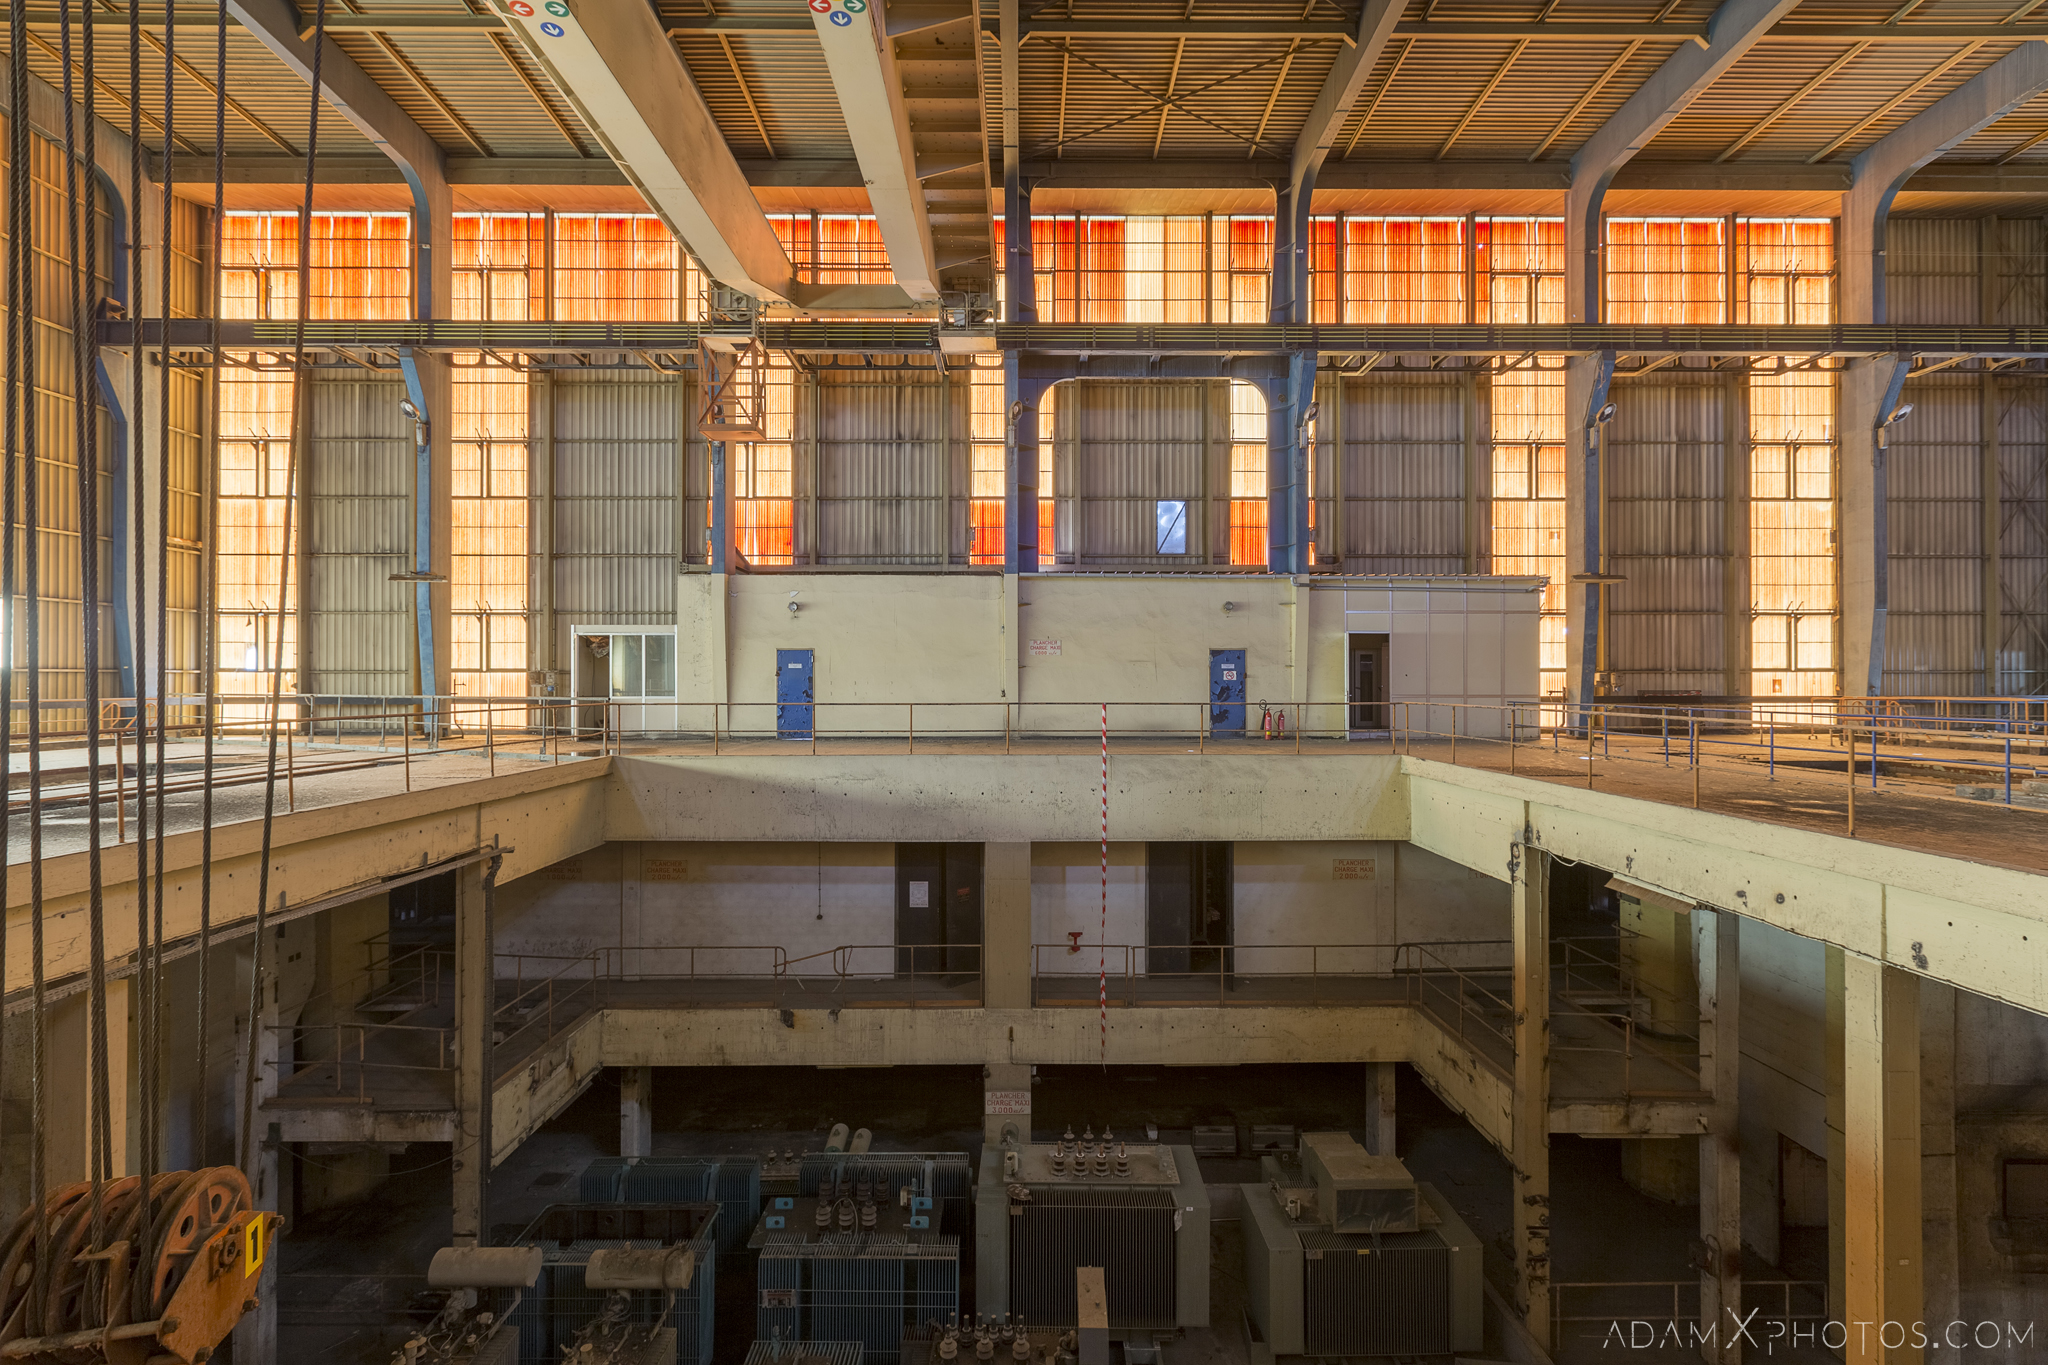 Main turbine hall lady in red control room power plant Industry Industrial Adam X Urbex Urban Exploration Belgium Access 2017 Abandoned decay lost forgotten derelict location creepy haunting eerie